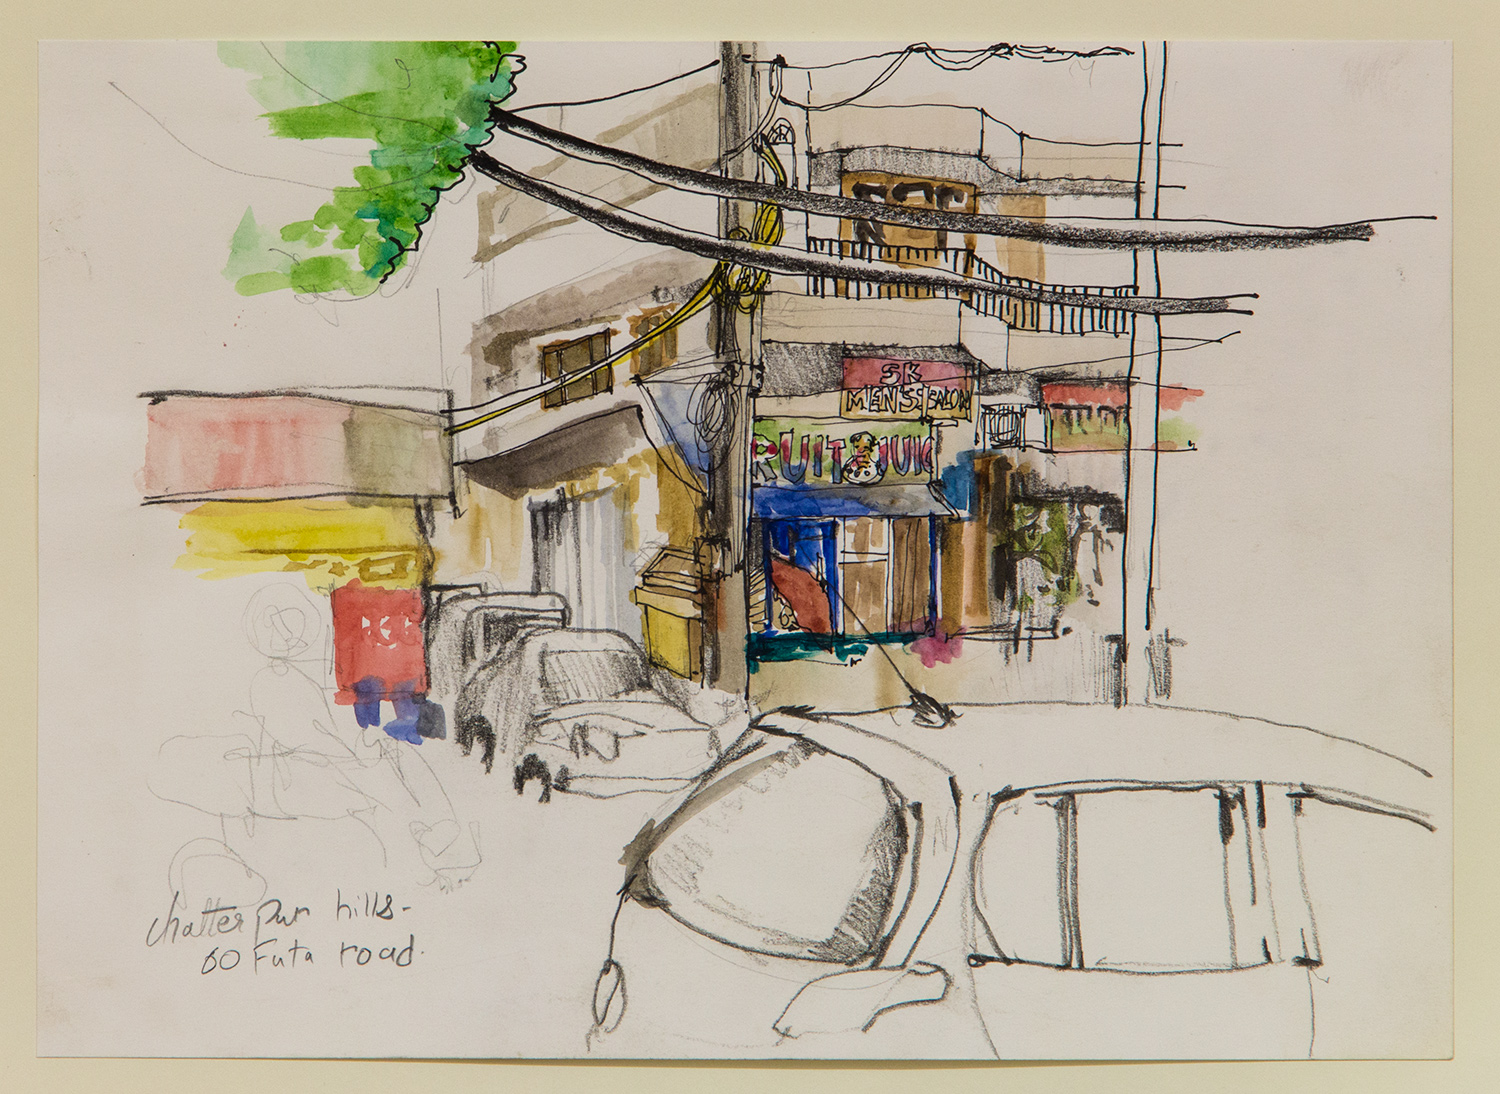 Chatterpur; 28 x 20 cm; watercolour, ink and coloured pencil on Paper; 2016